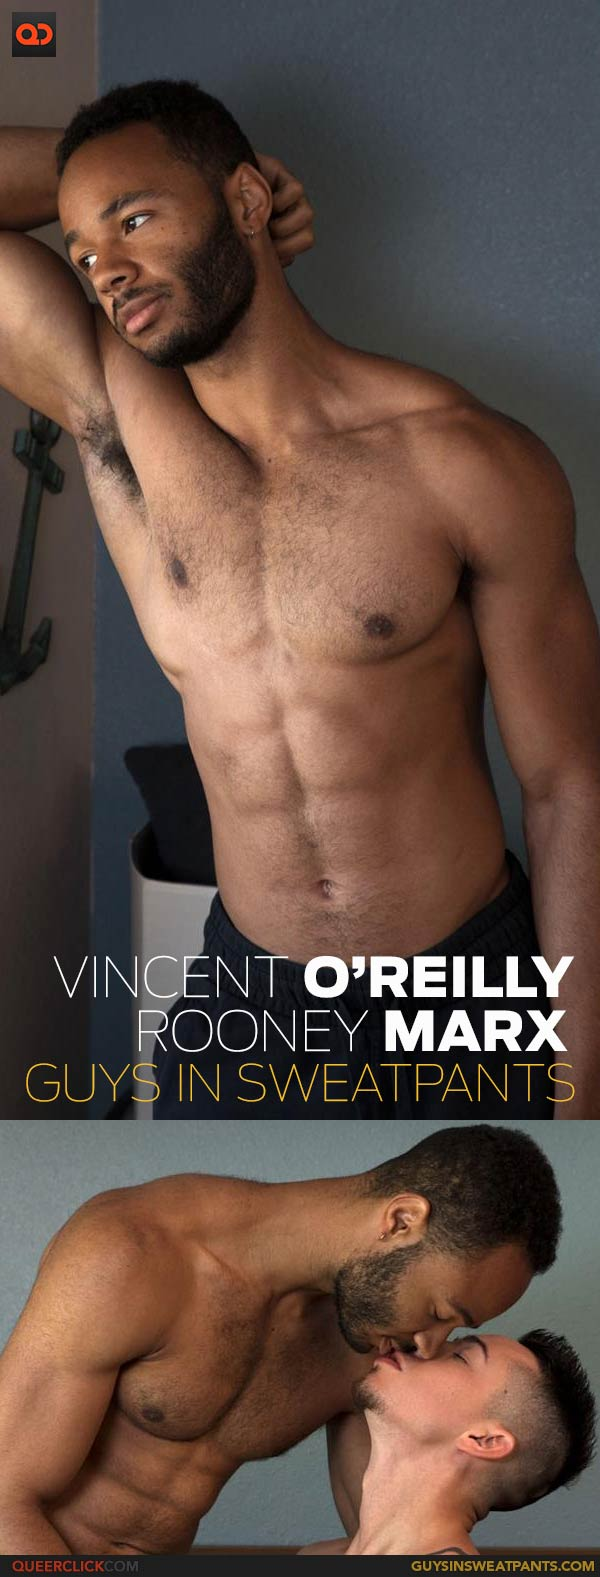 Guys in Sweatpants: Rooney Marx and Vincent O'Reilly - Use my Hole!